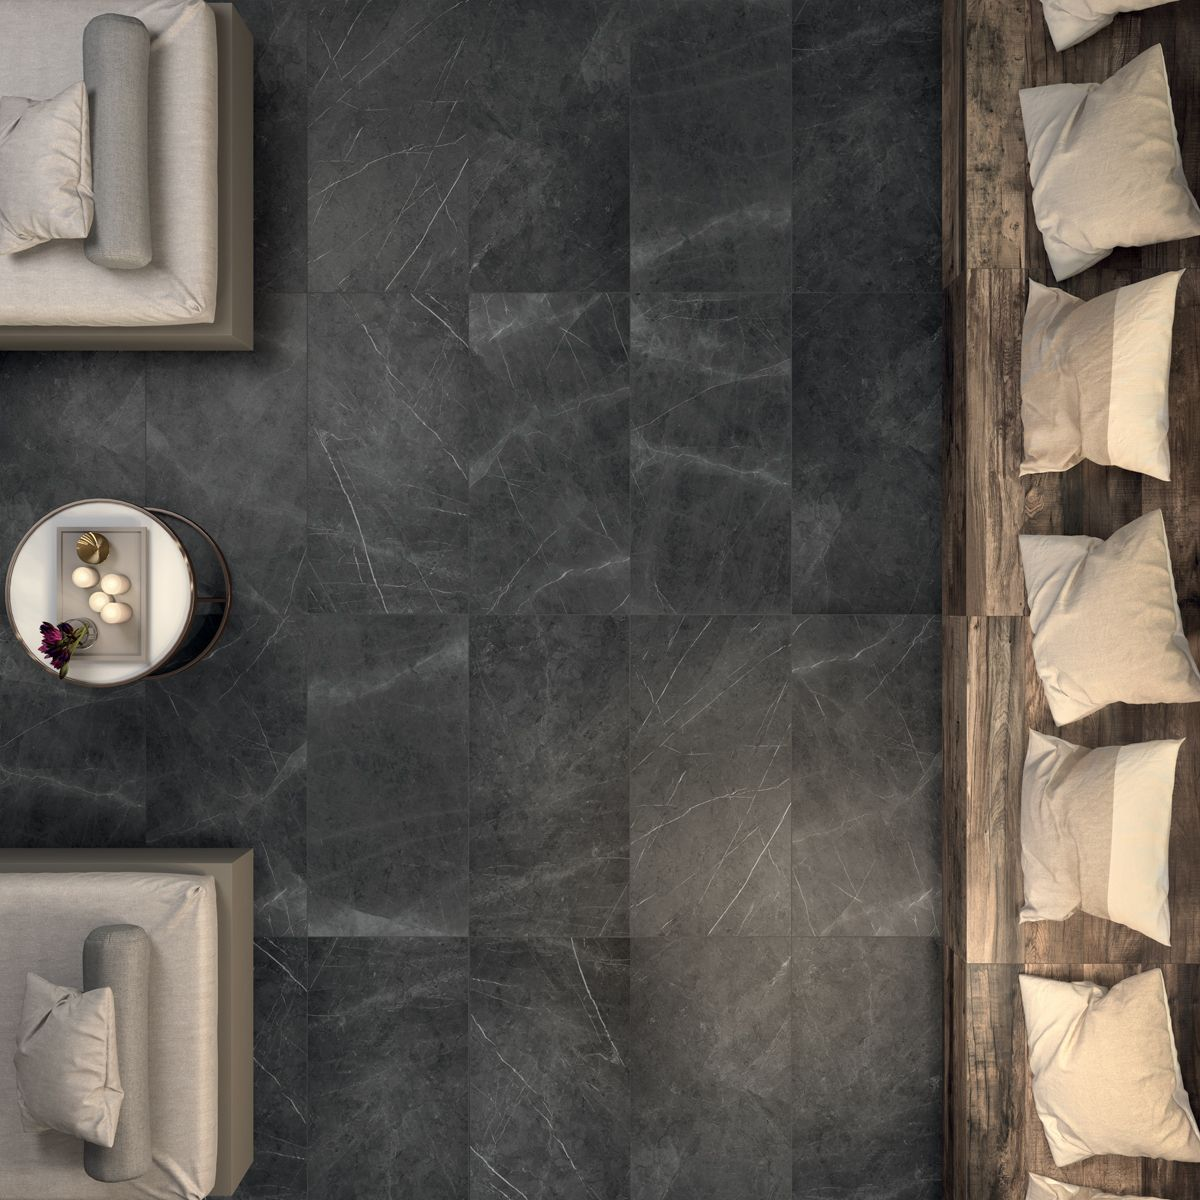 Leleganza del pavimento sensi pietra grey sabl 60x120 cm di sensi recreates the appeal of the original natural stone with two different kinds of surface treatment manual sanding and polishing interpreted by abk dailygadgetfo Images